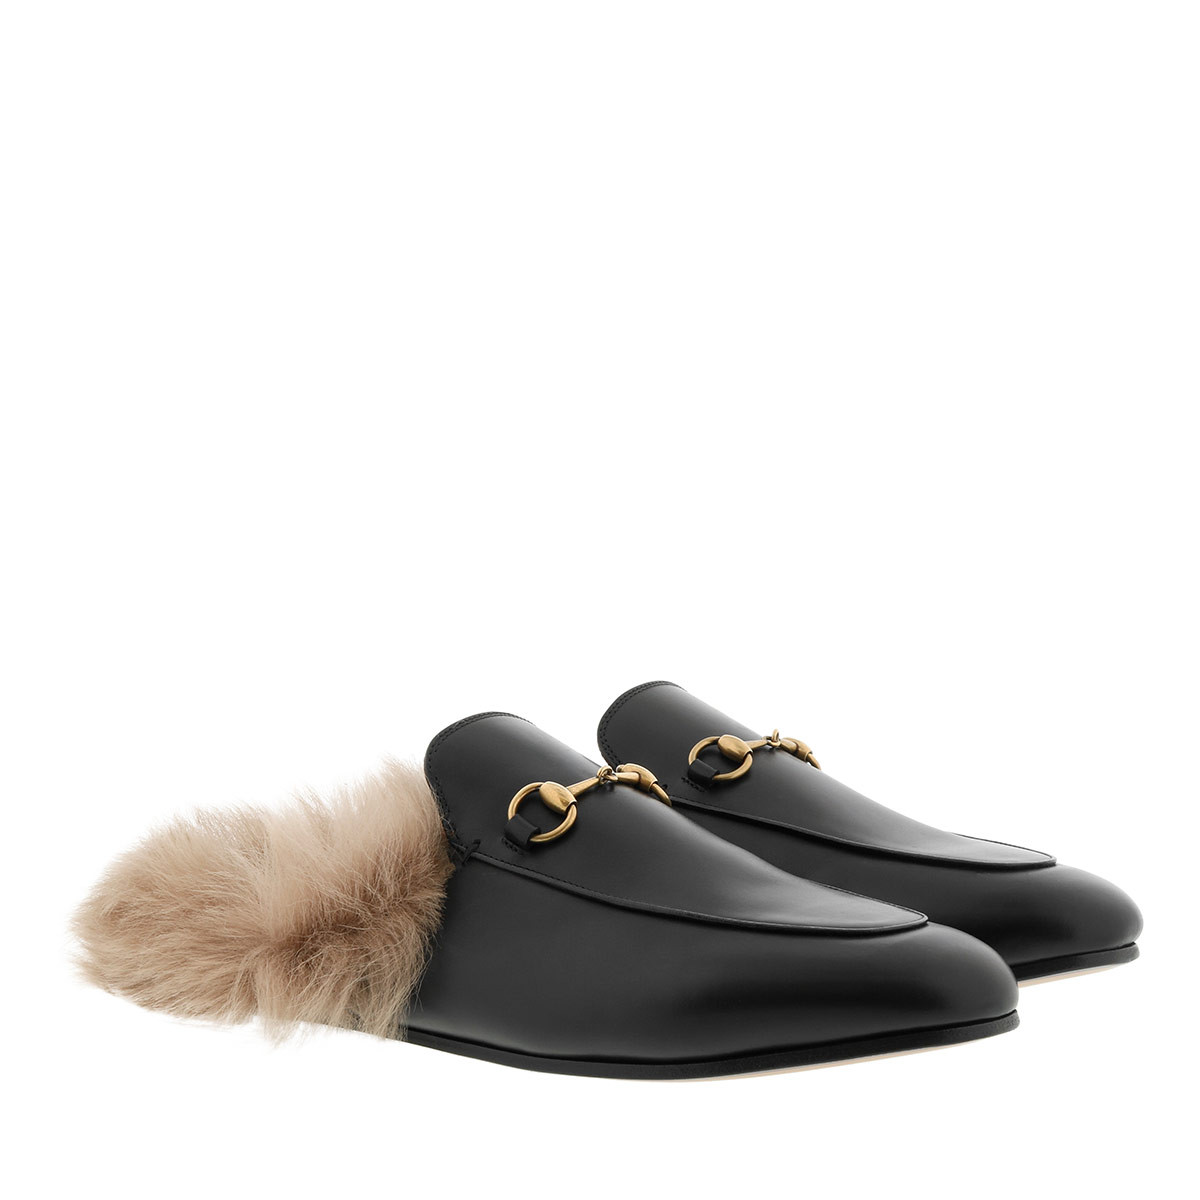 Gucci Schuhe - Princetown Slipper Horsebit Detail Leather Black - in schwarz - für Damen